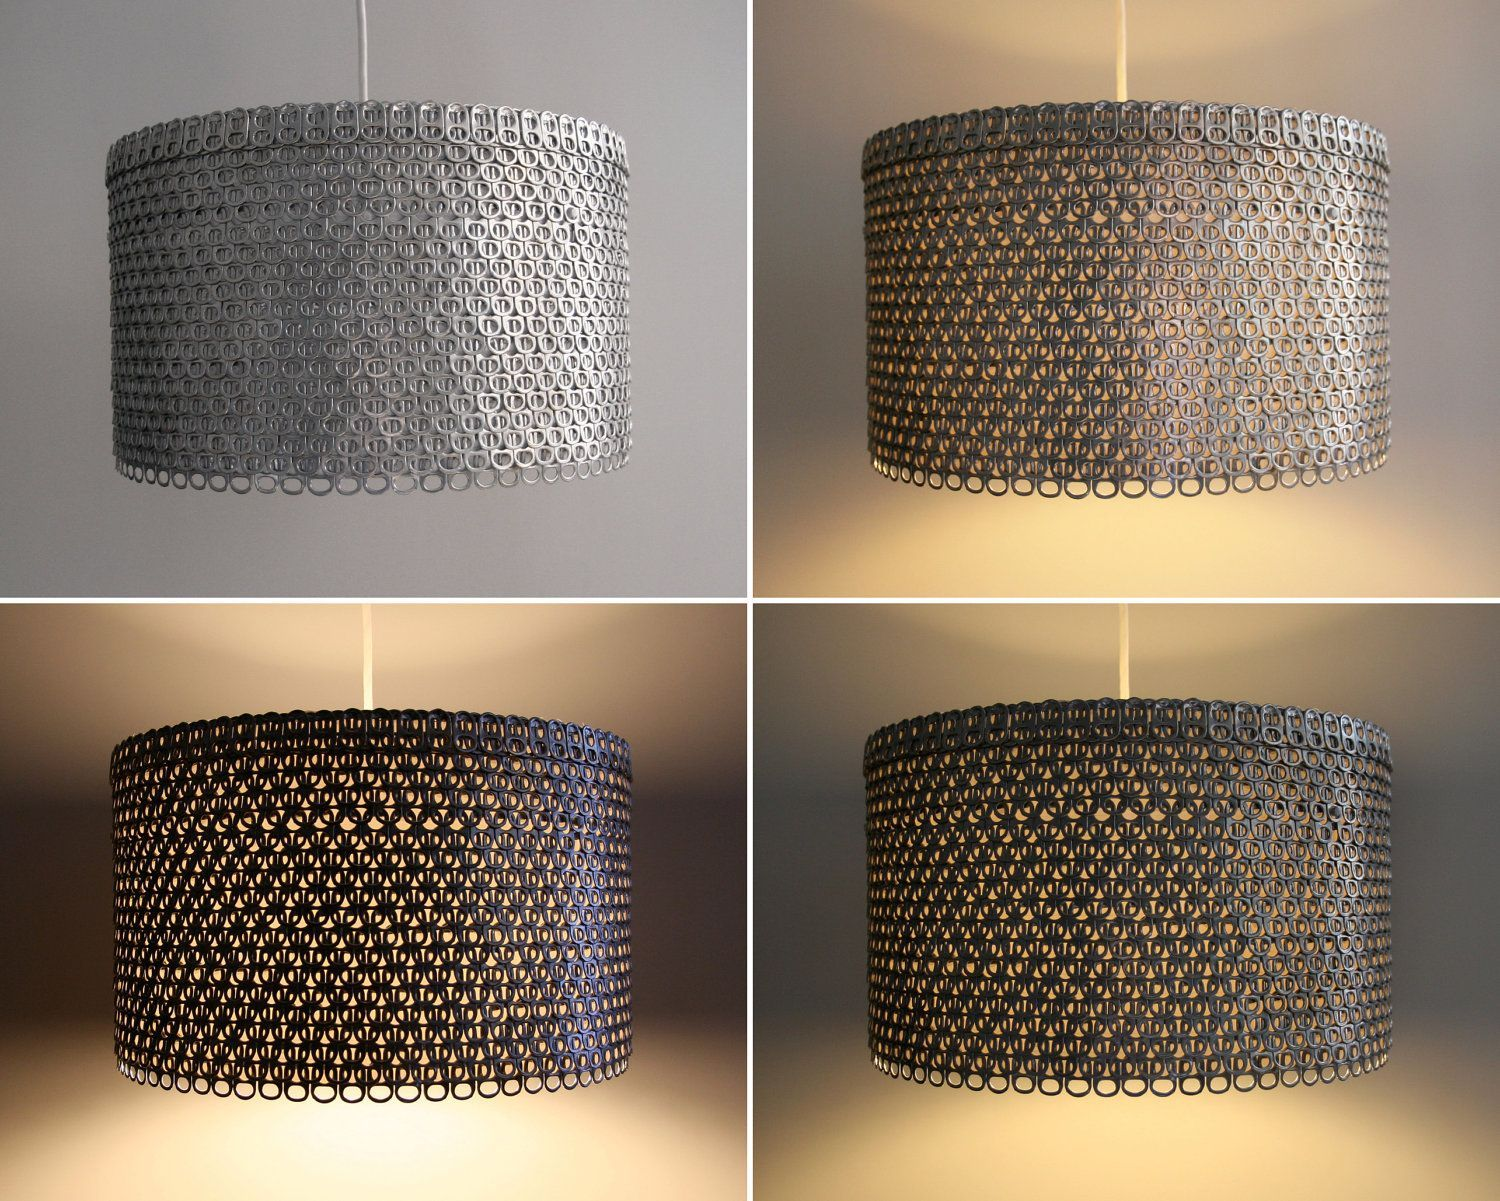 Soda Can Tab Drum Shade Large Eco Friendly Pendant Light Shade Only 350 00 Via Etsy La Extra Large Lamp Shades Drum Shade Chandelier Small Lamp Shades